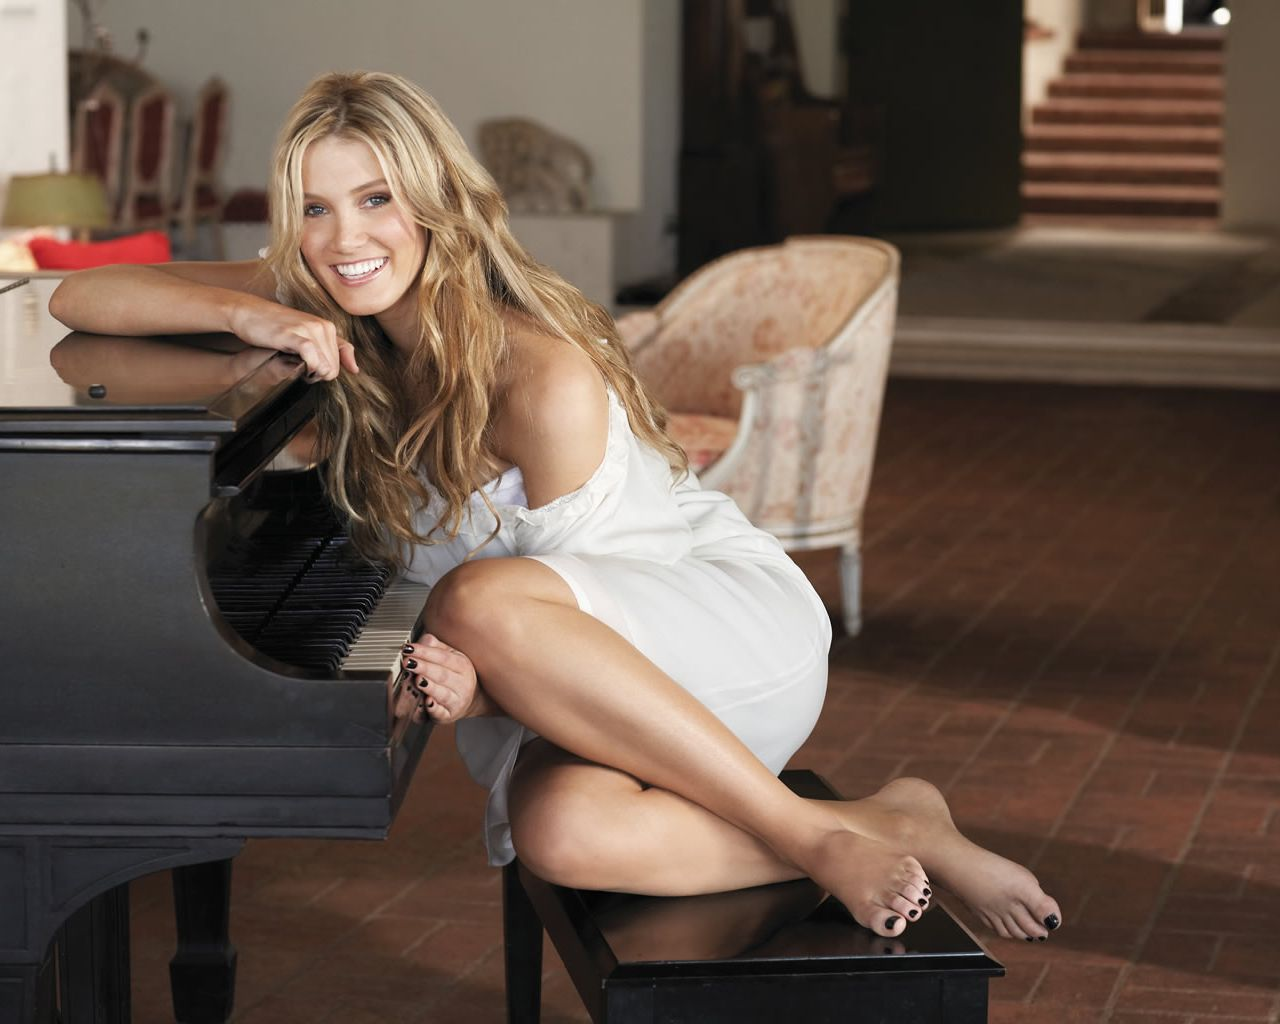 Delta Goodrem Feet Legs And Shoes Photos 1280x1024